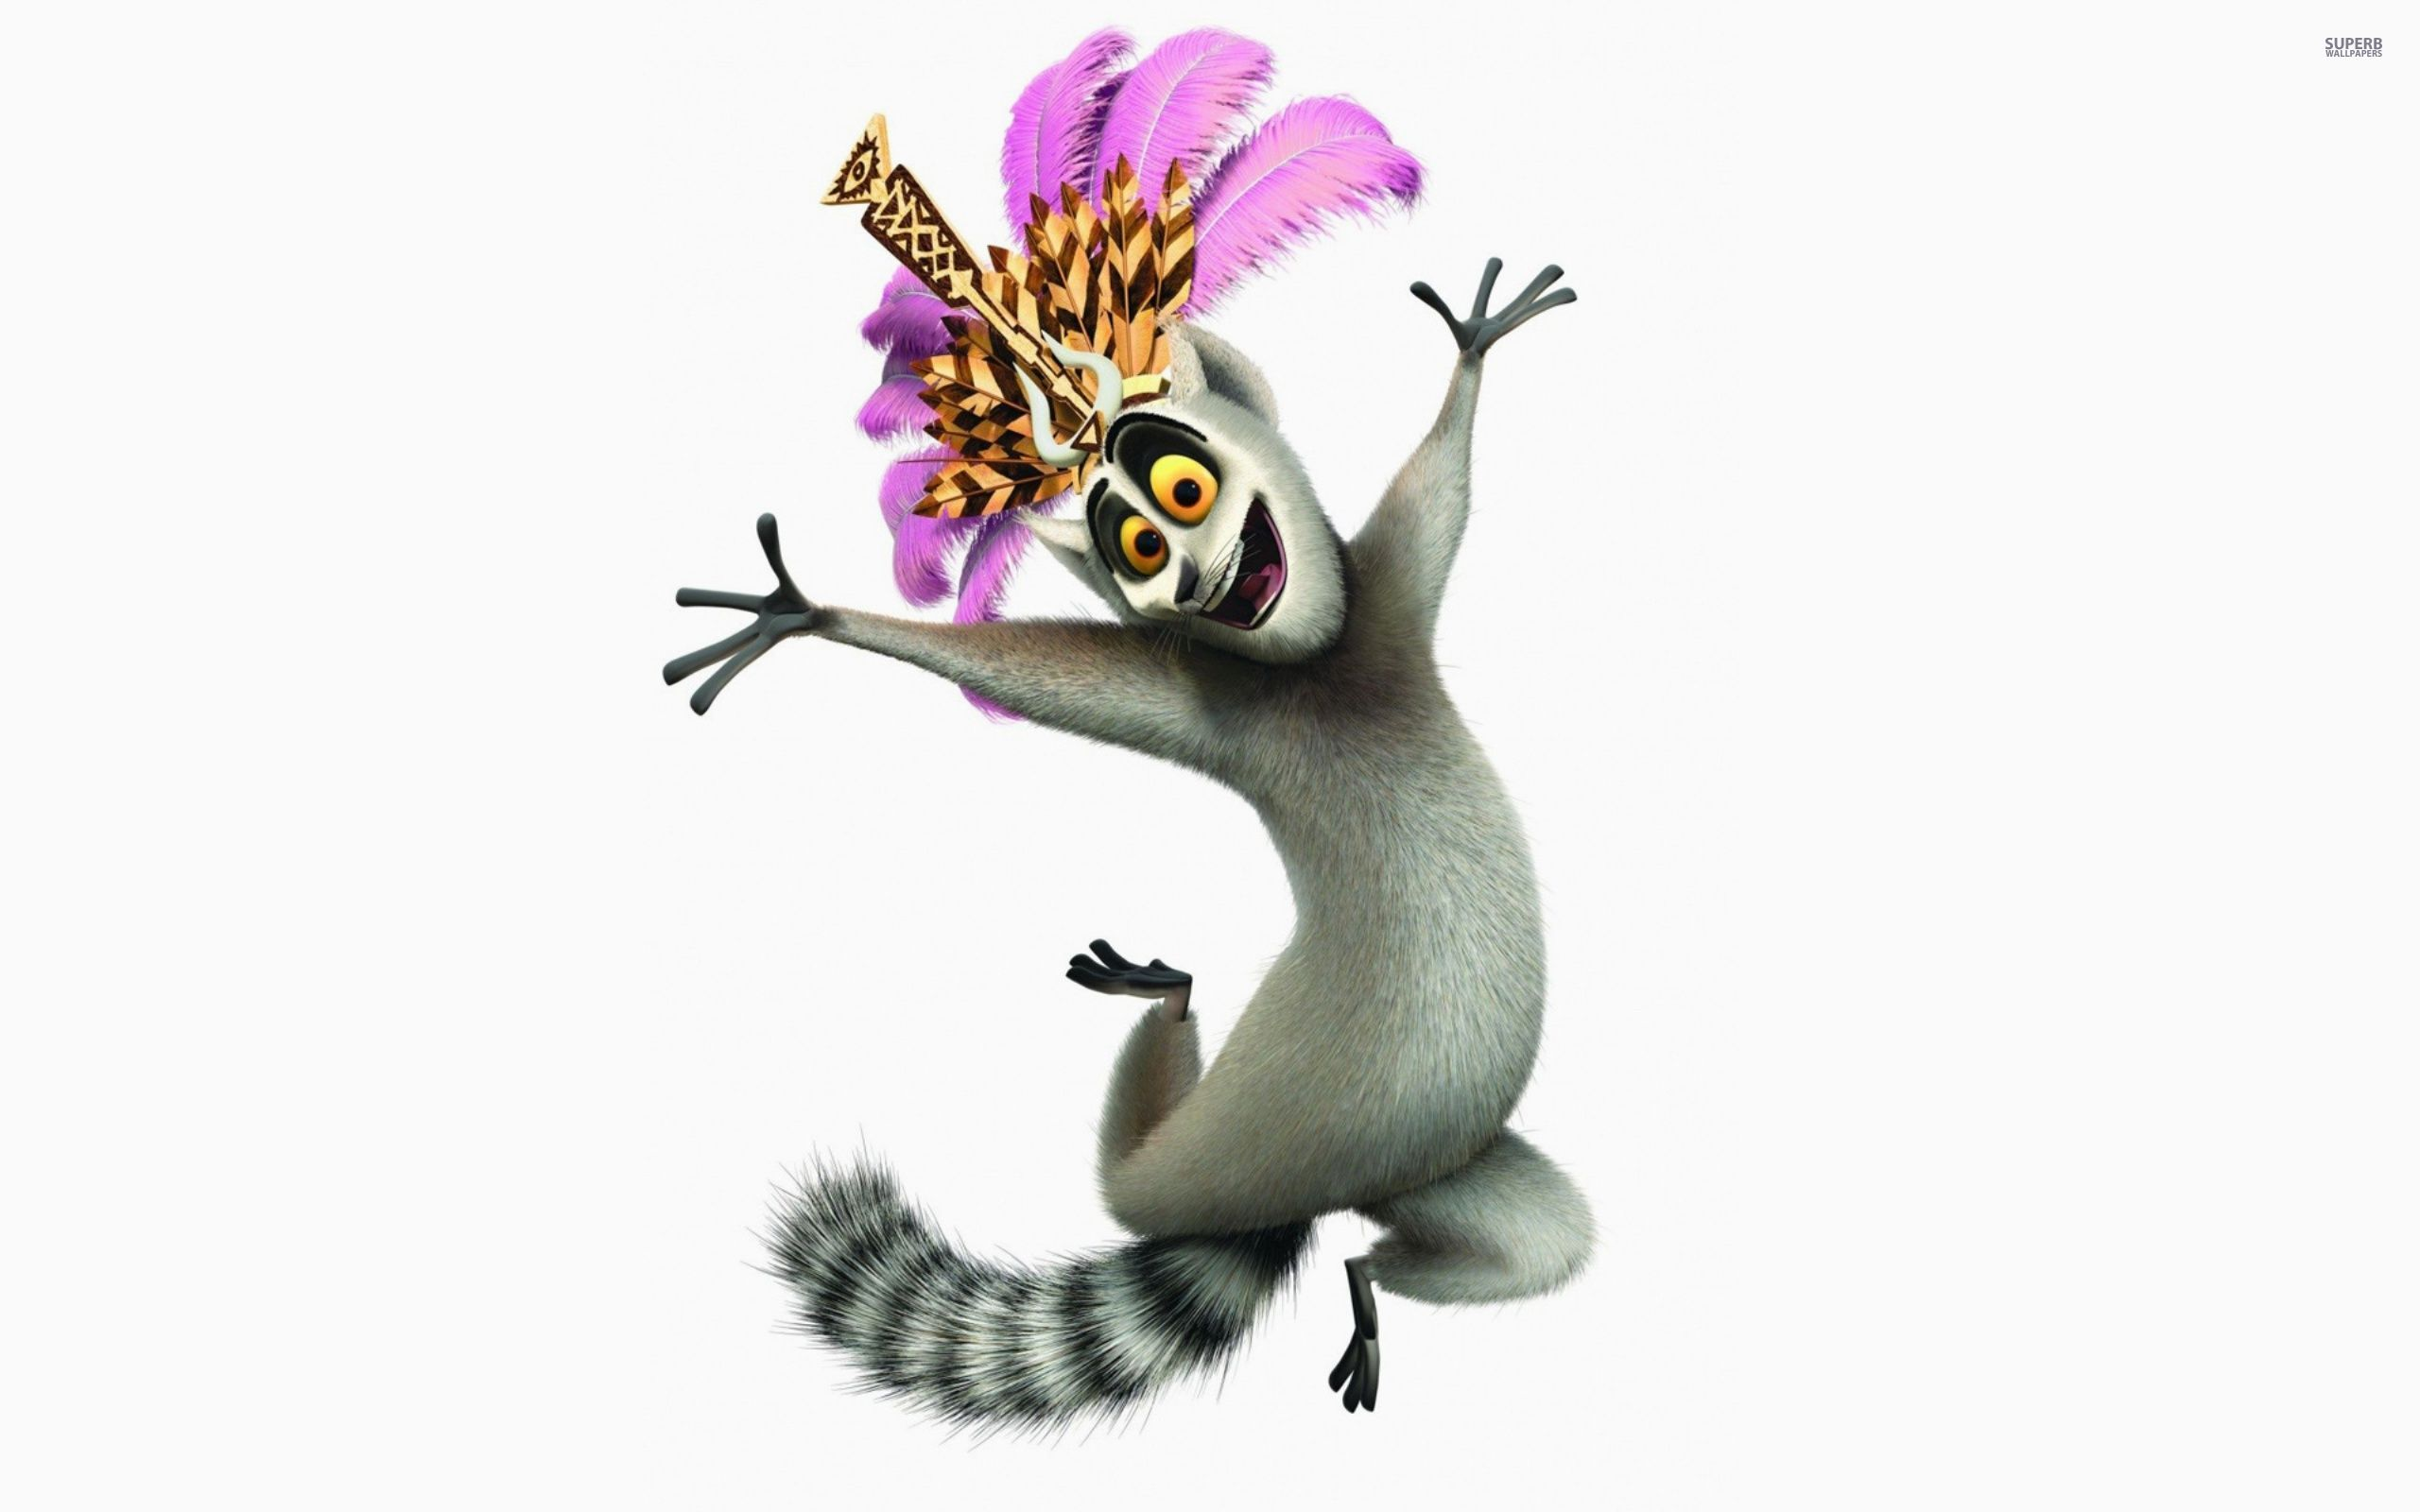 Download King Julien - Madagascar wallpaper